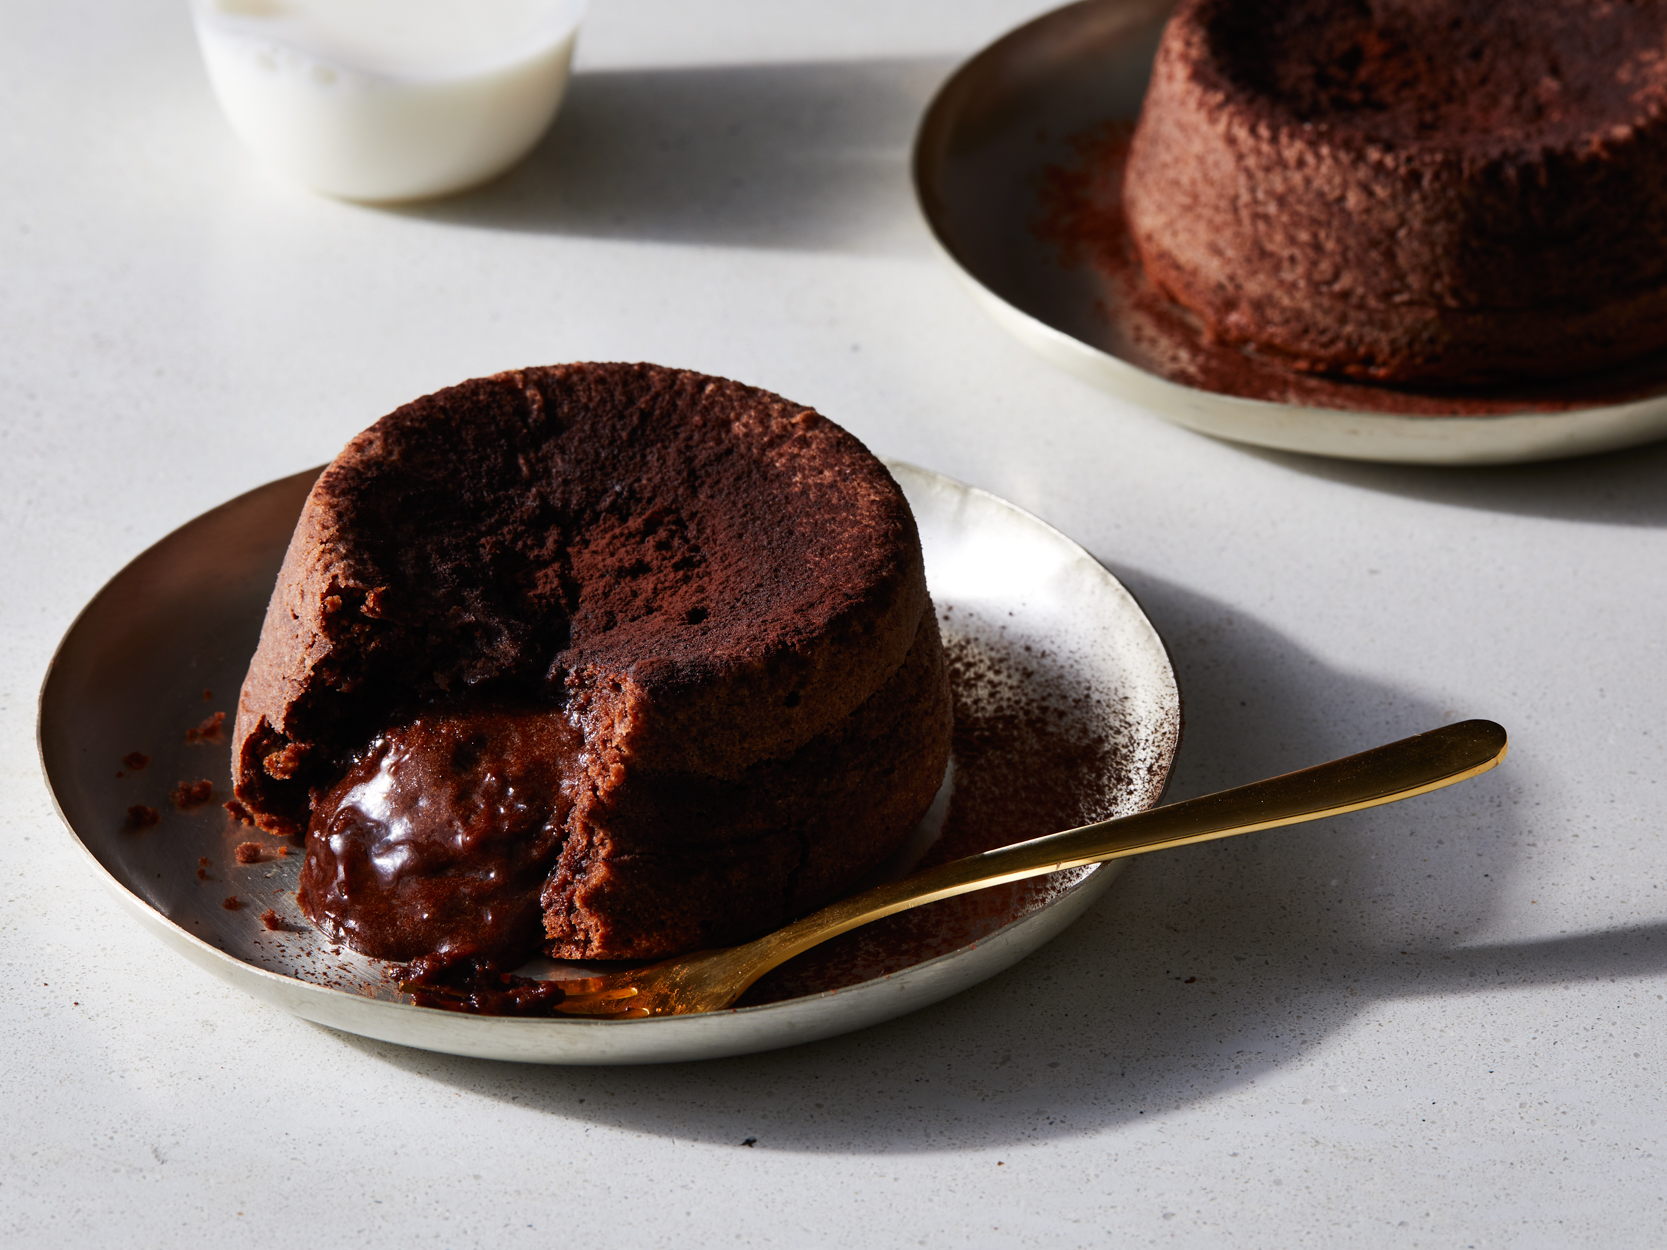 The Best Valentine's Day Dessert Is Still Molten Chocolate Cake